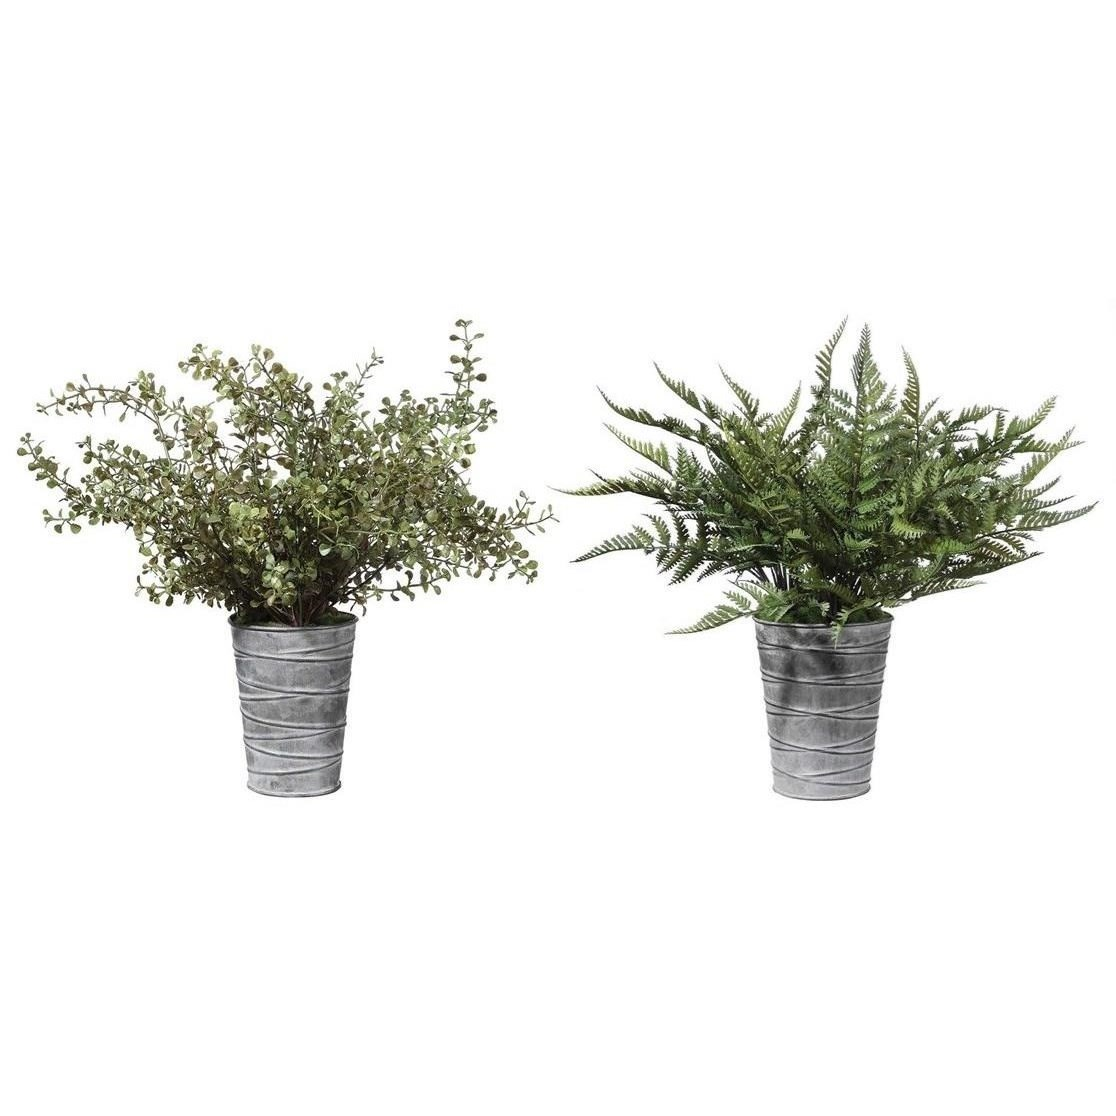 Quimby Potted Ferns Set/2